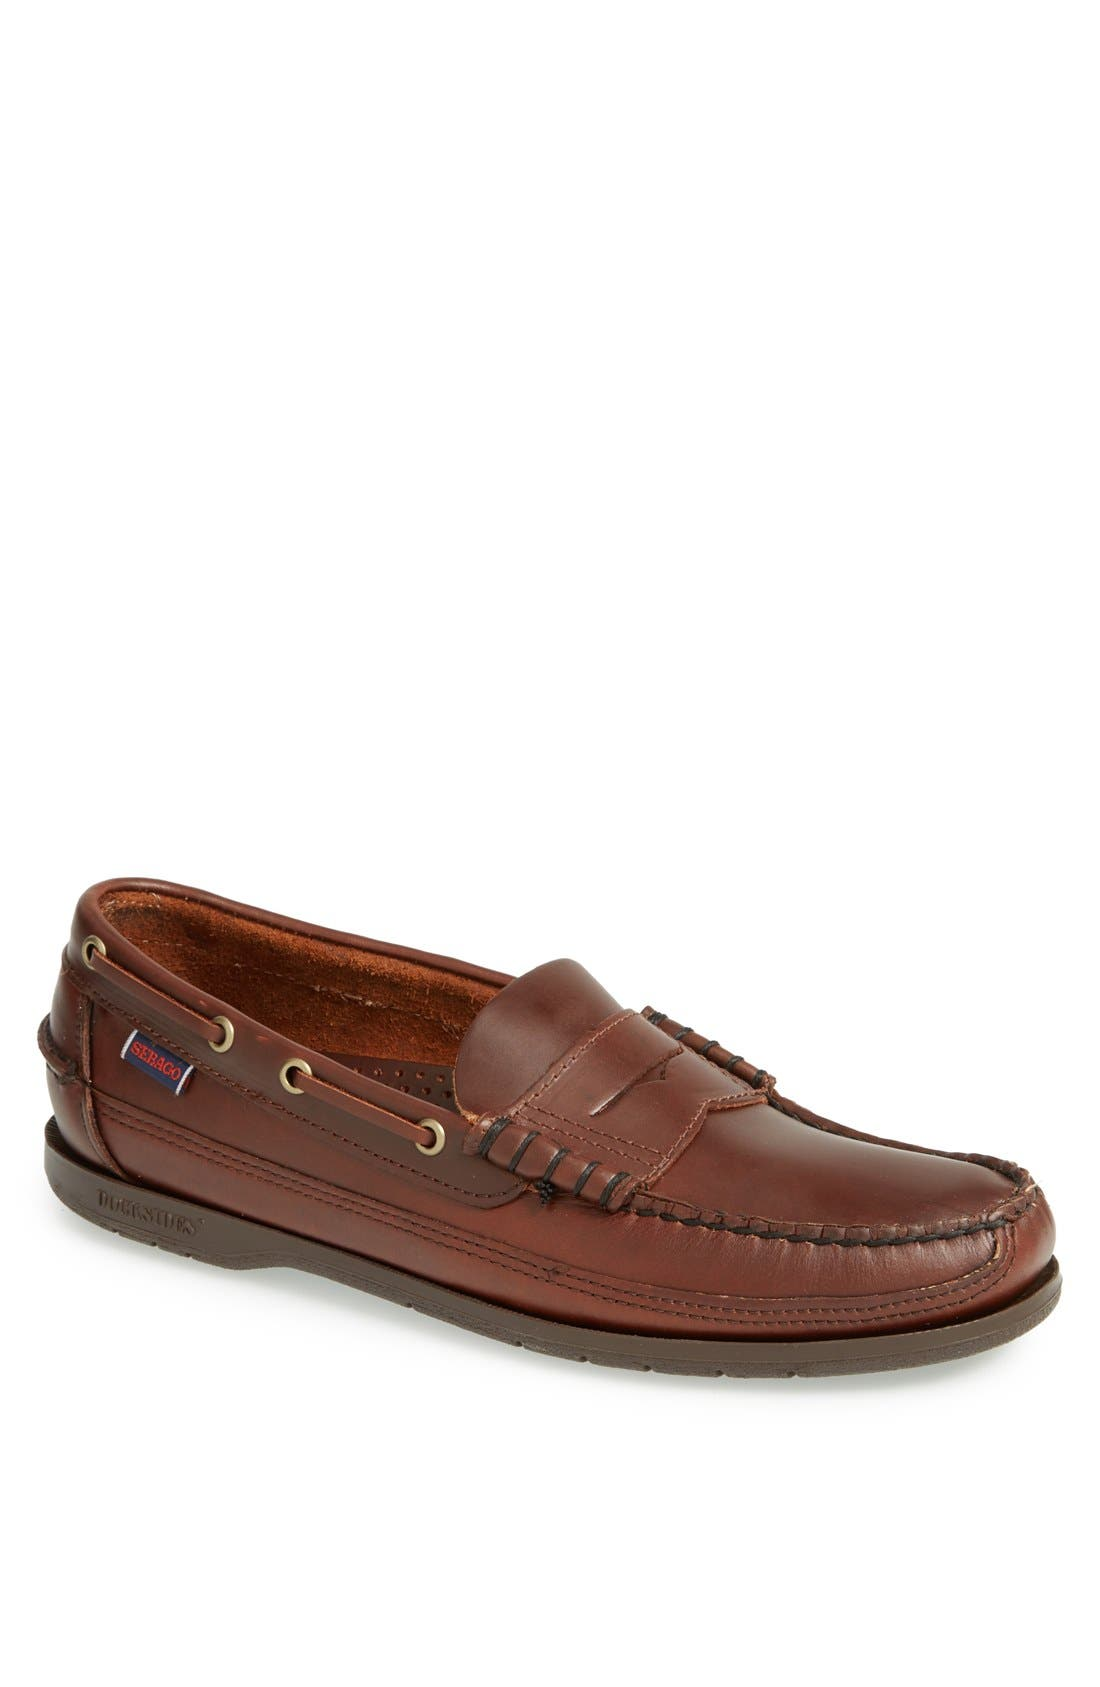 Sebago 'Sloop' Penny Loafer